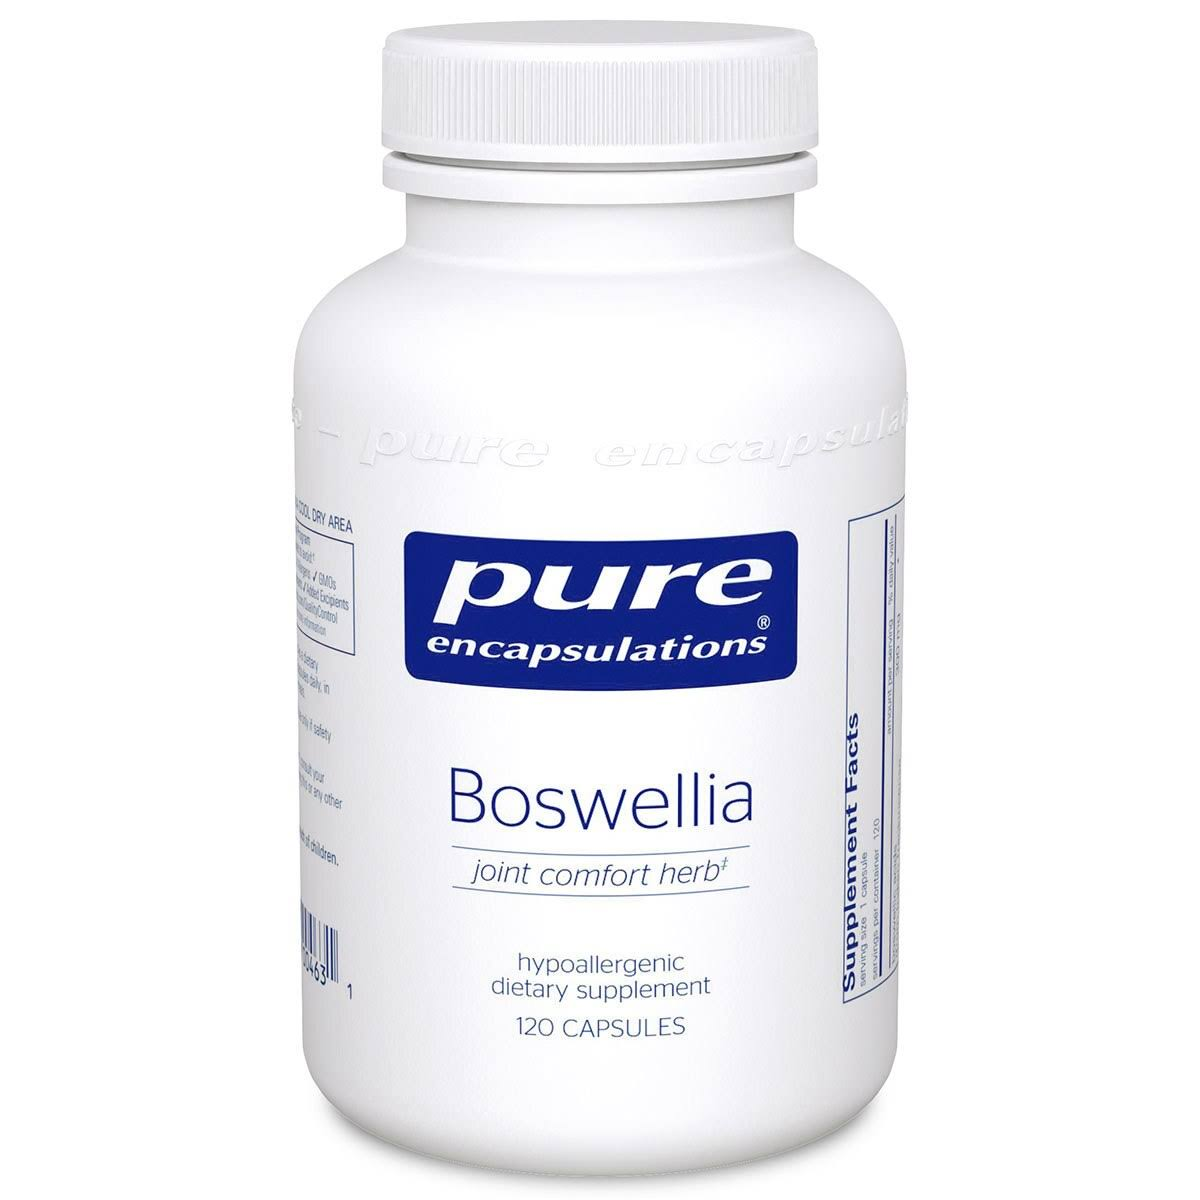 Pure Encapsulations Boswellia Dietary Supplement - 120ct